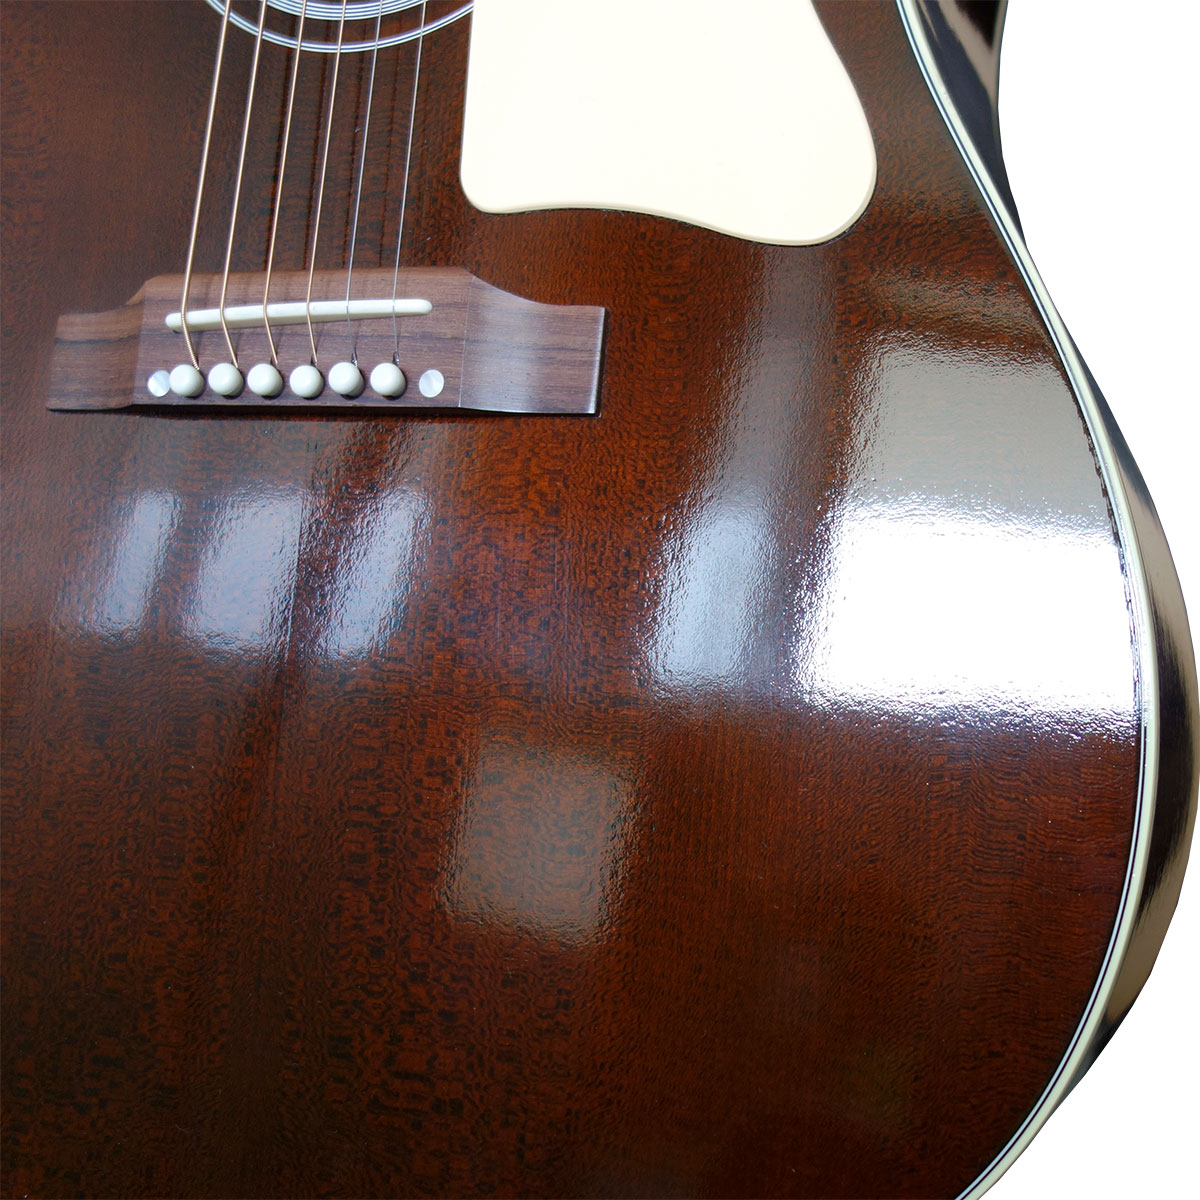 Gibson 1960s J-45 Brown Top Finish Body Top